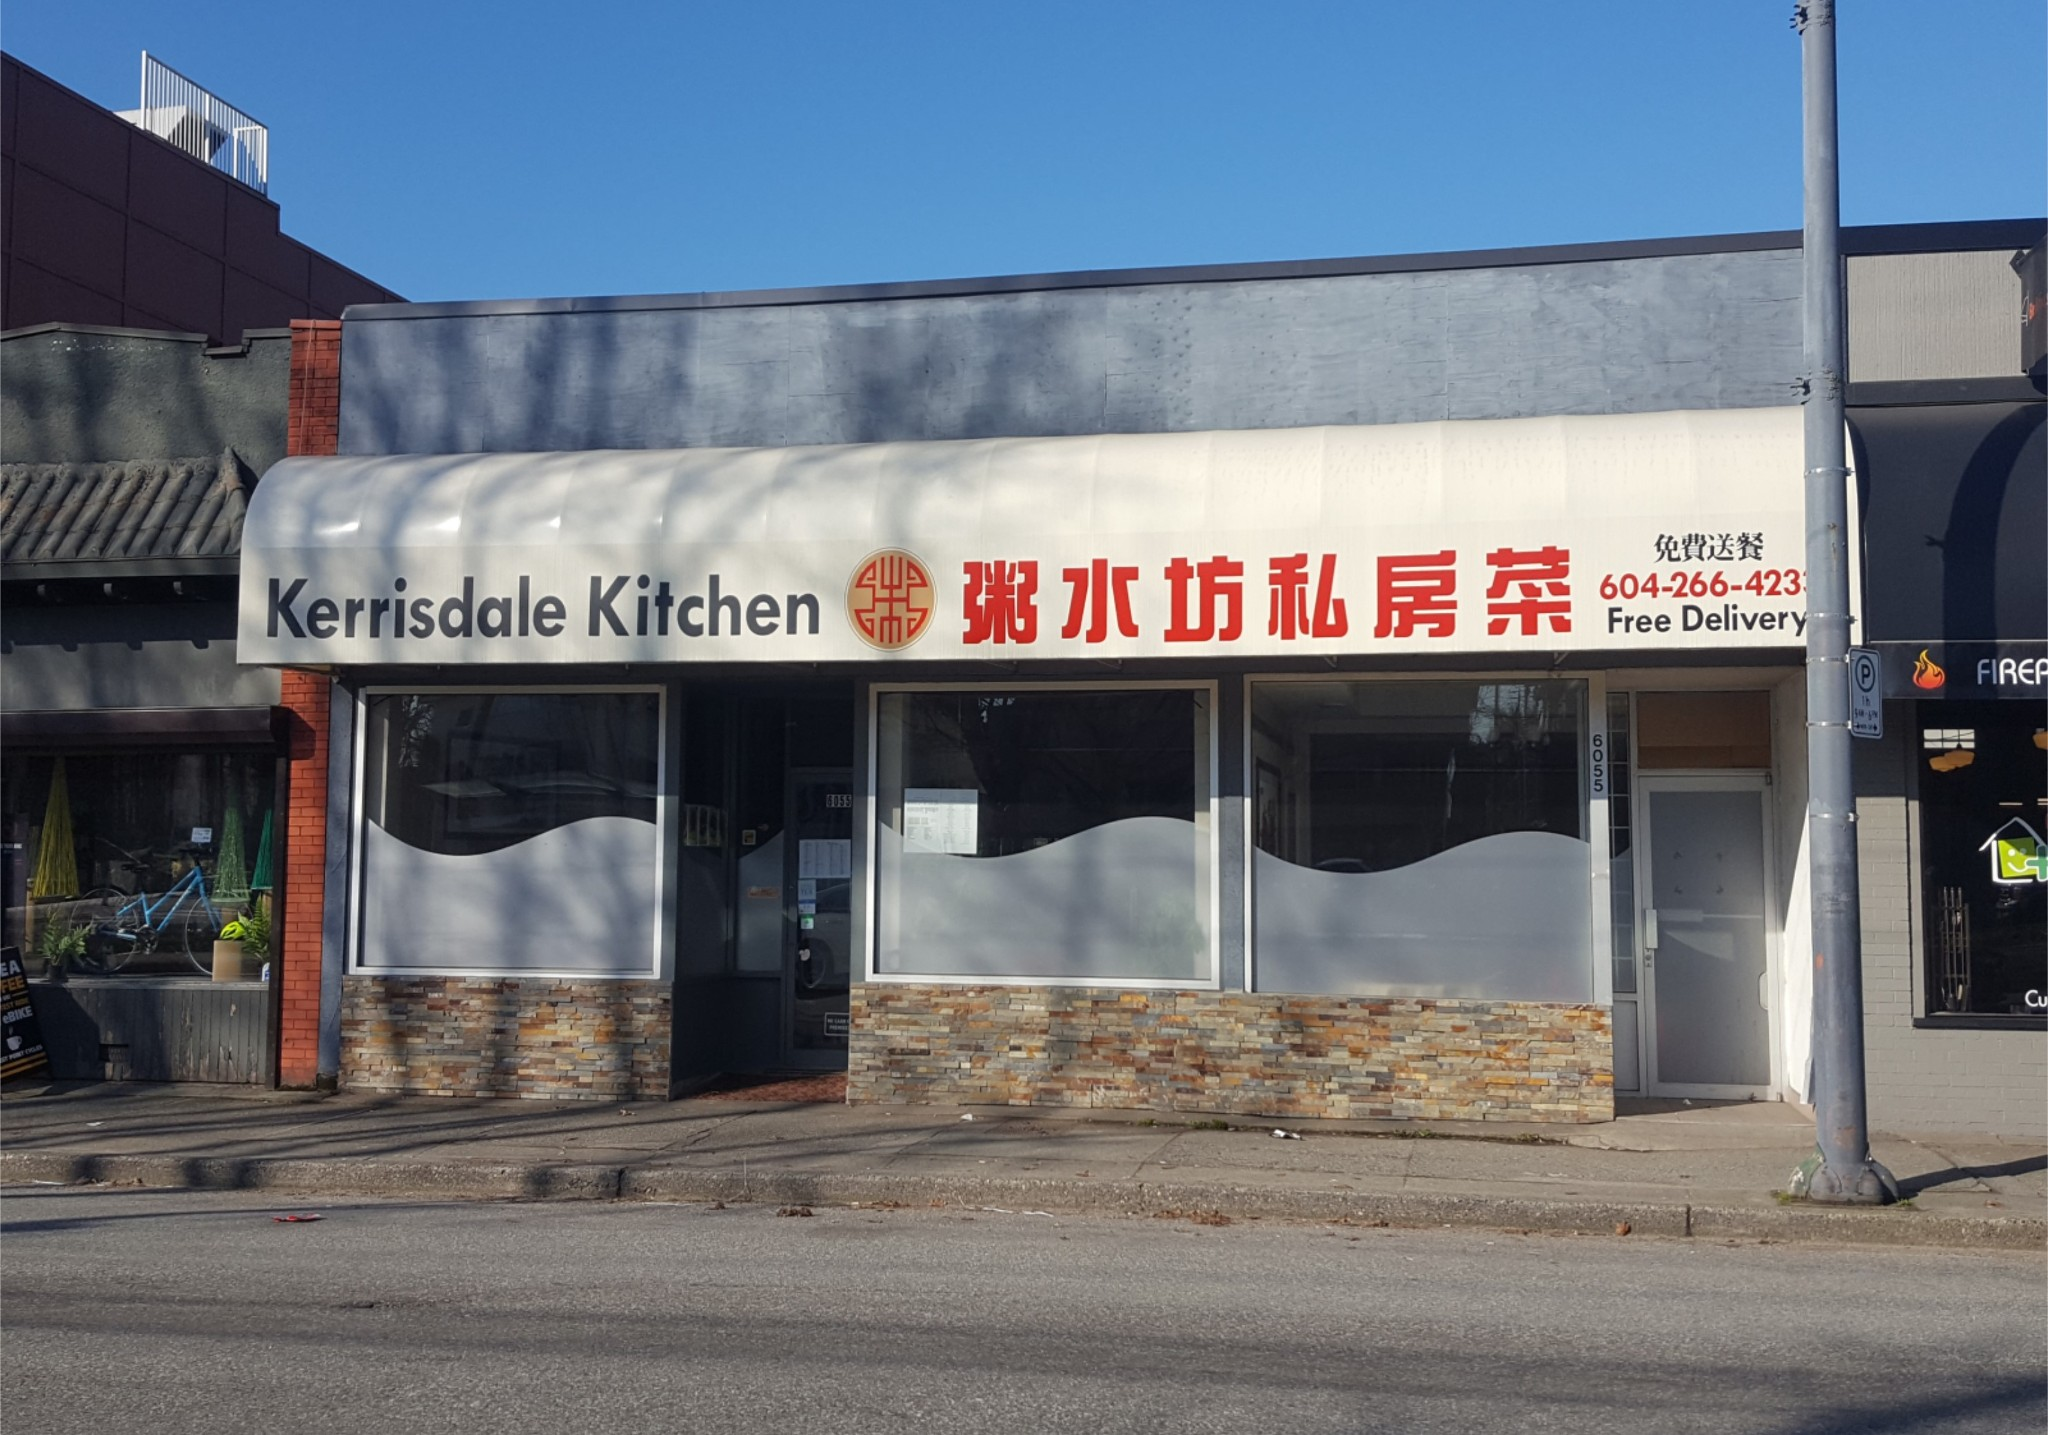 Main Photo: 6055 West Boulevard in Vancouver: Kerrisdale Business for sale (Vancouver West)  : MLS® # C8017060